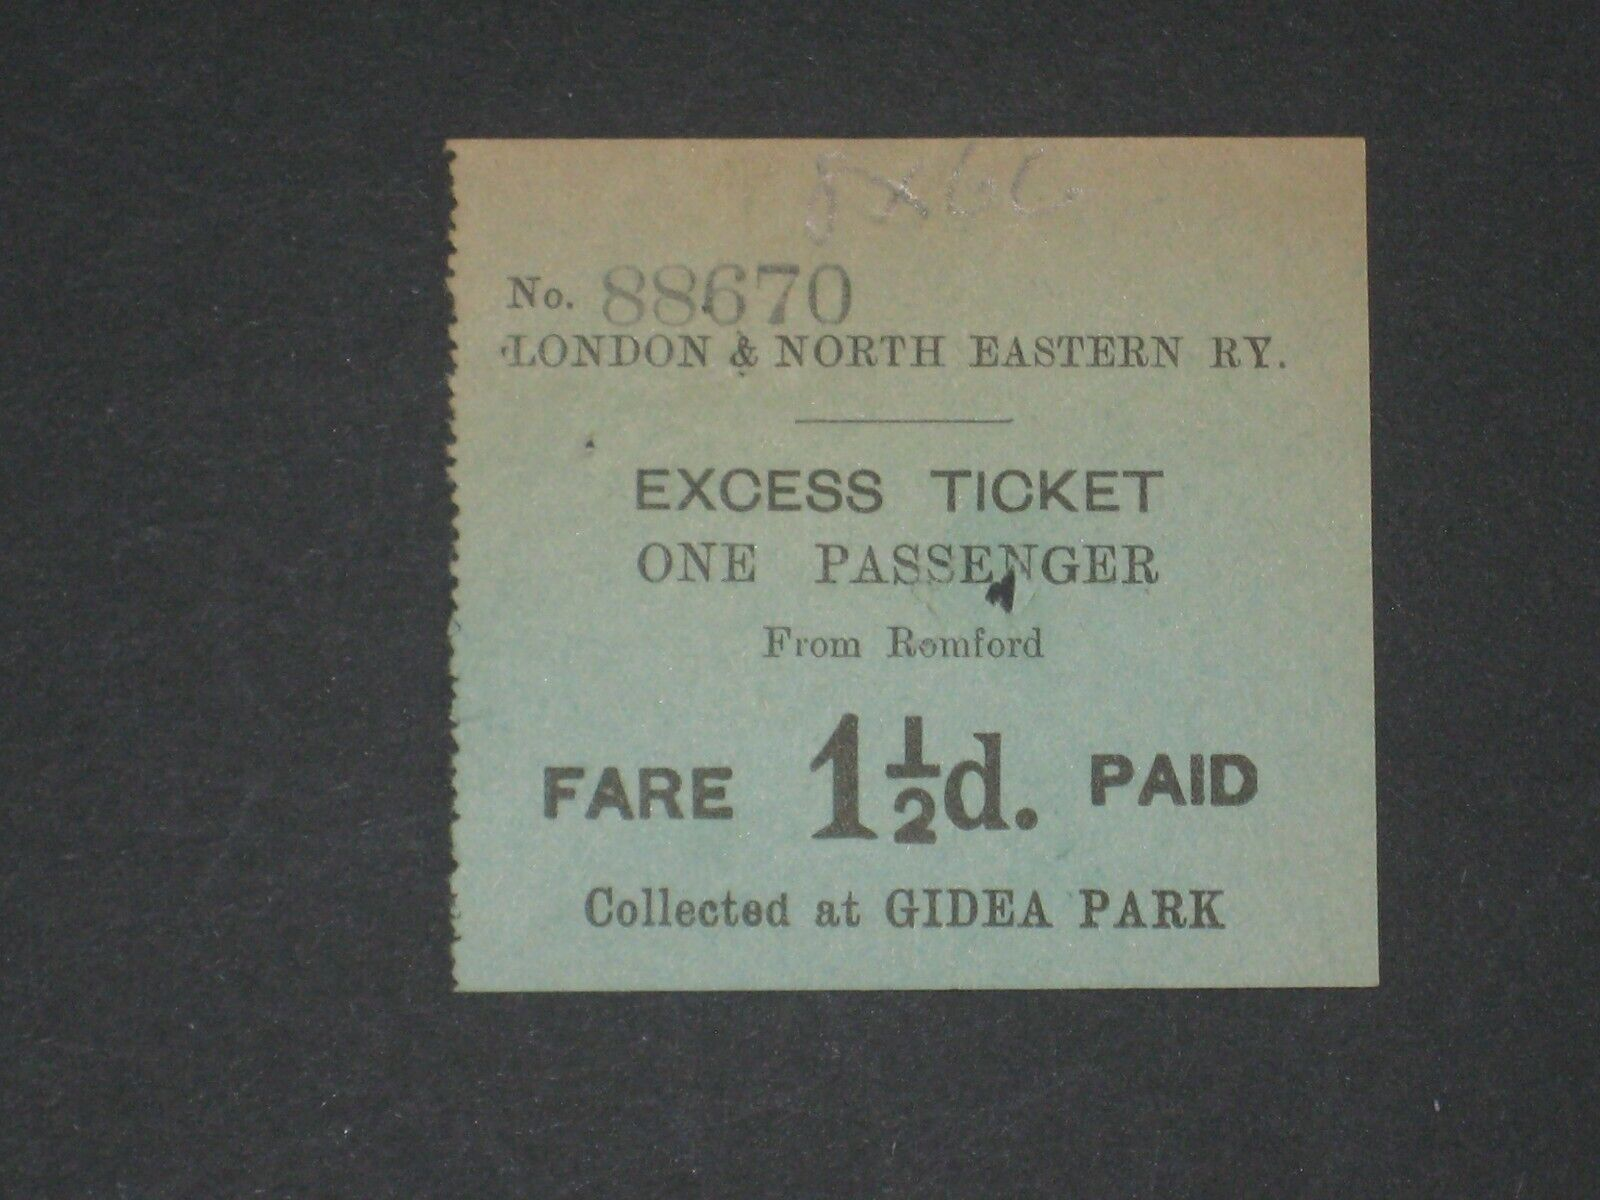 Railwayana - L.N.E.R, Excess Ticket, Romford, 1 1/2d collected at Gidea Park